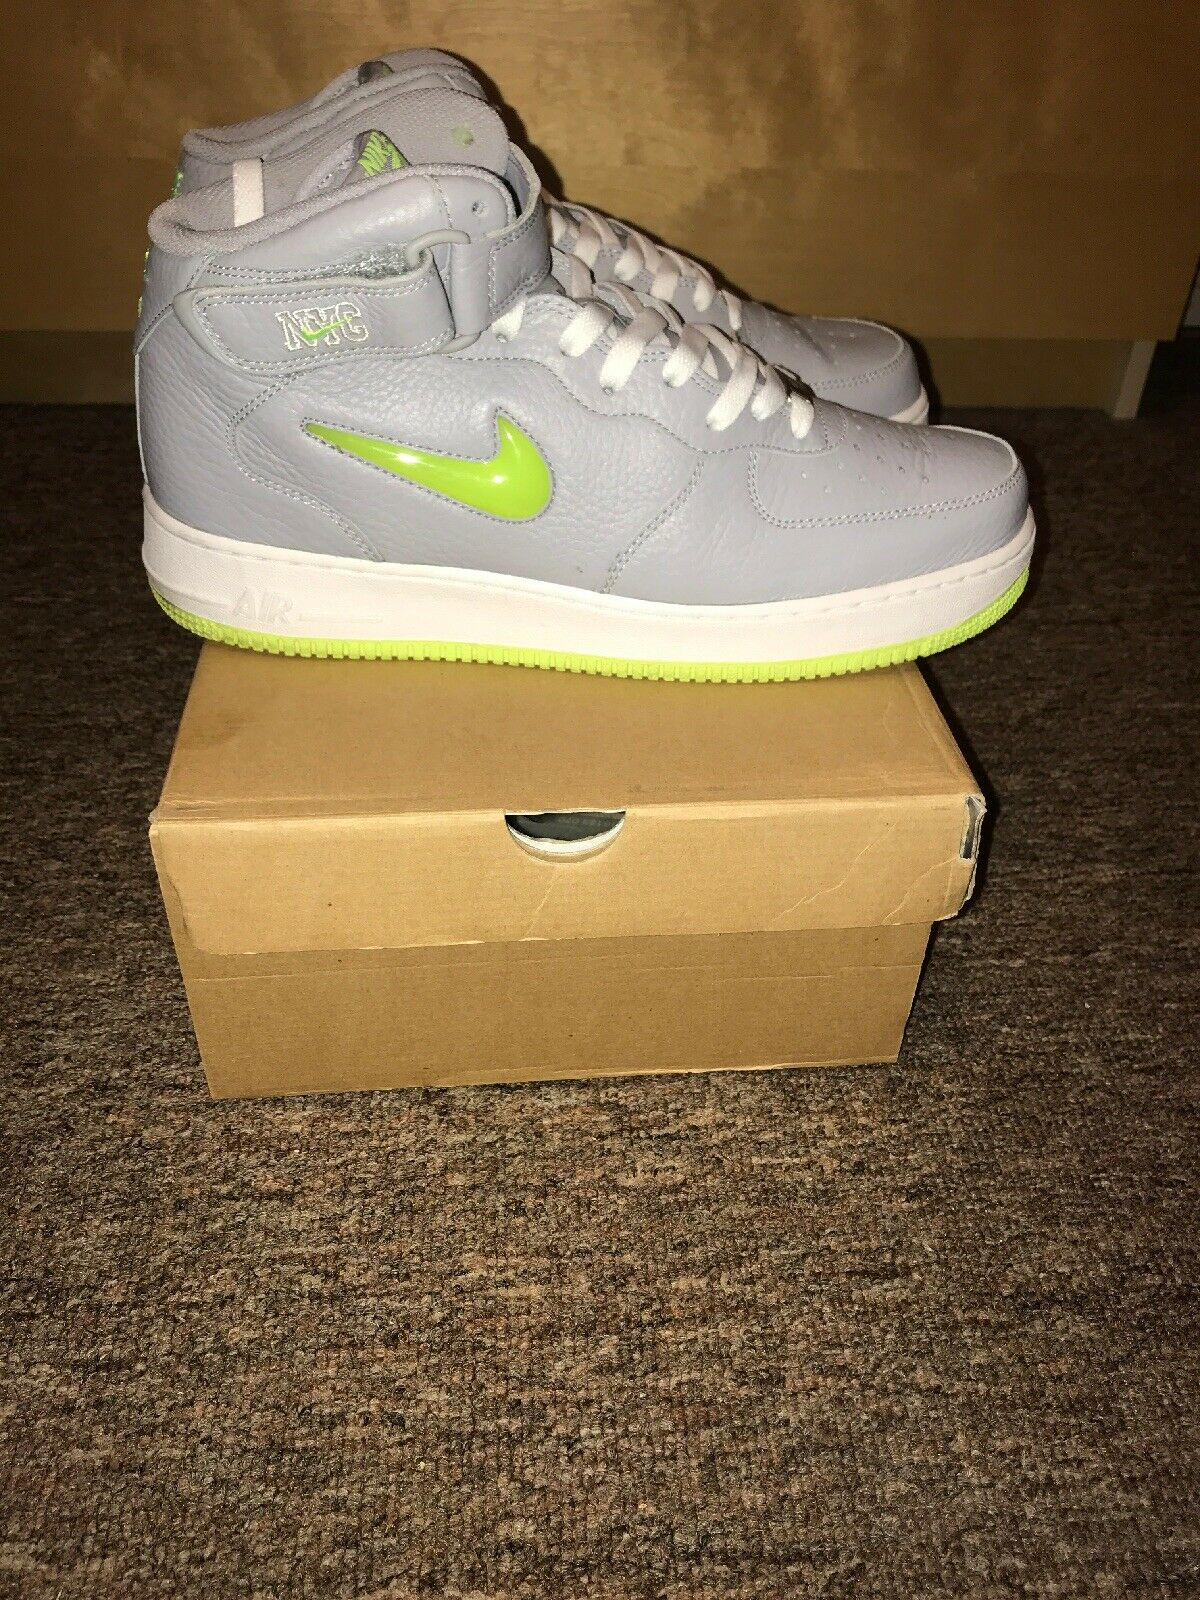 Nike Air Force 1 One Mid 07 NYC Jewel Volt Size 10.5